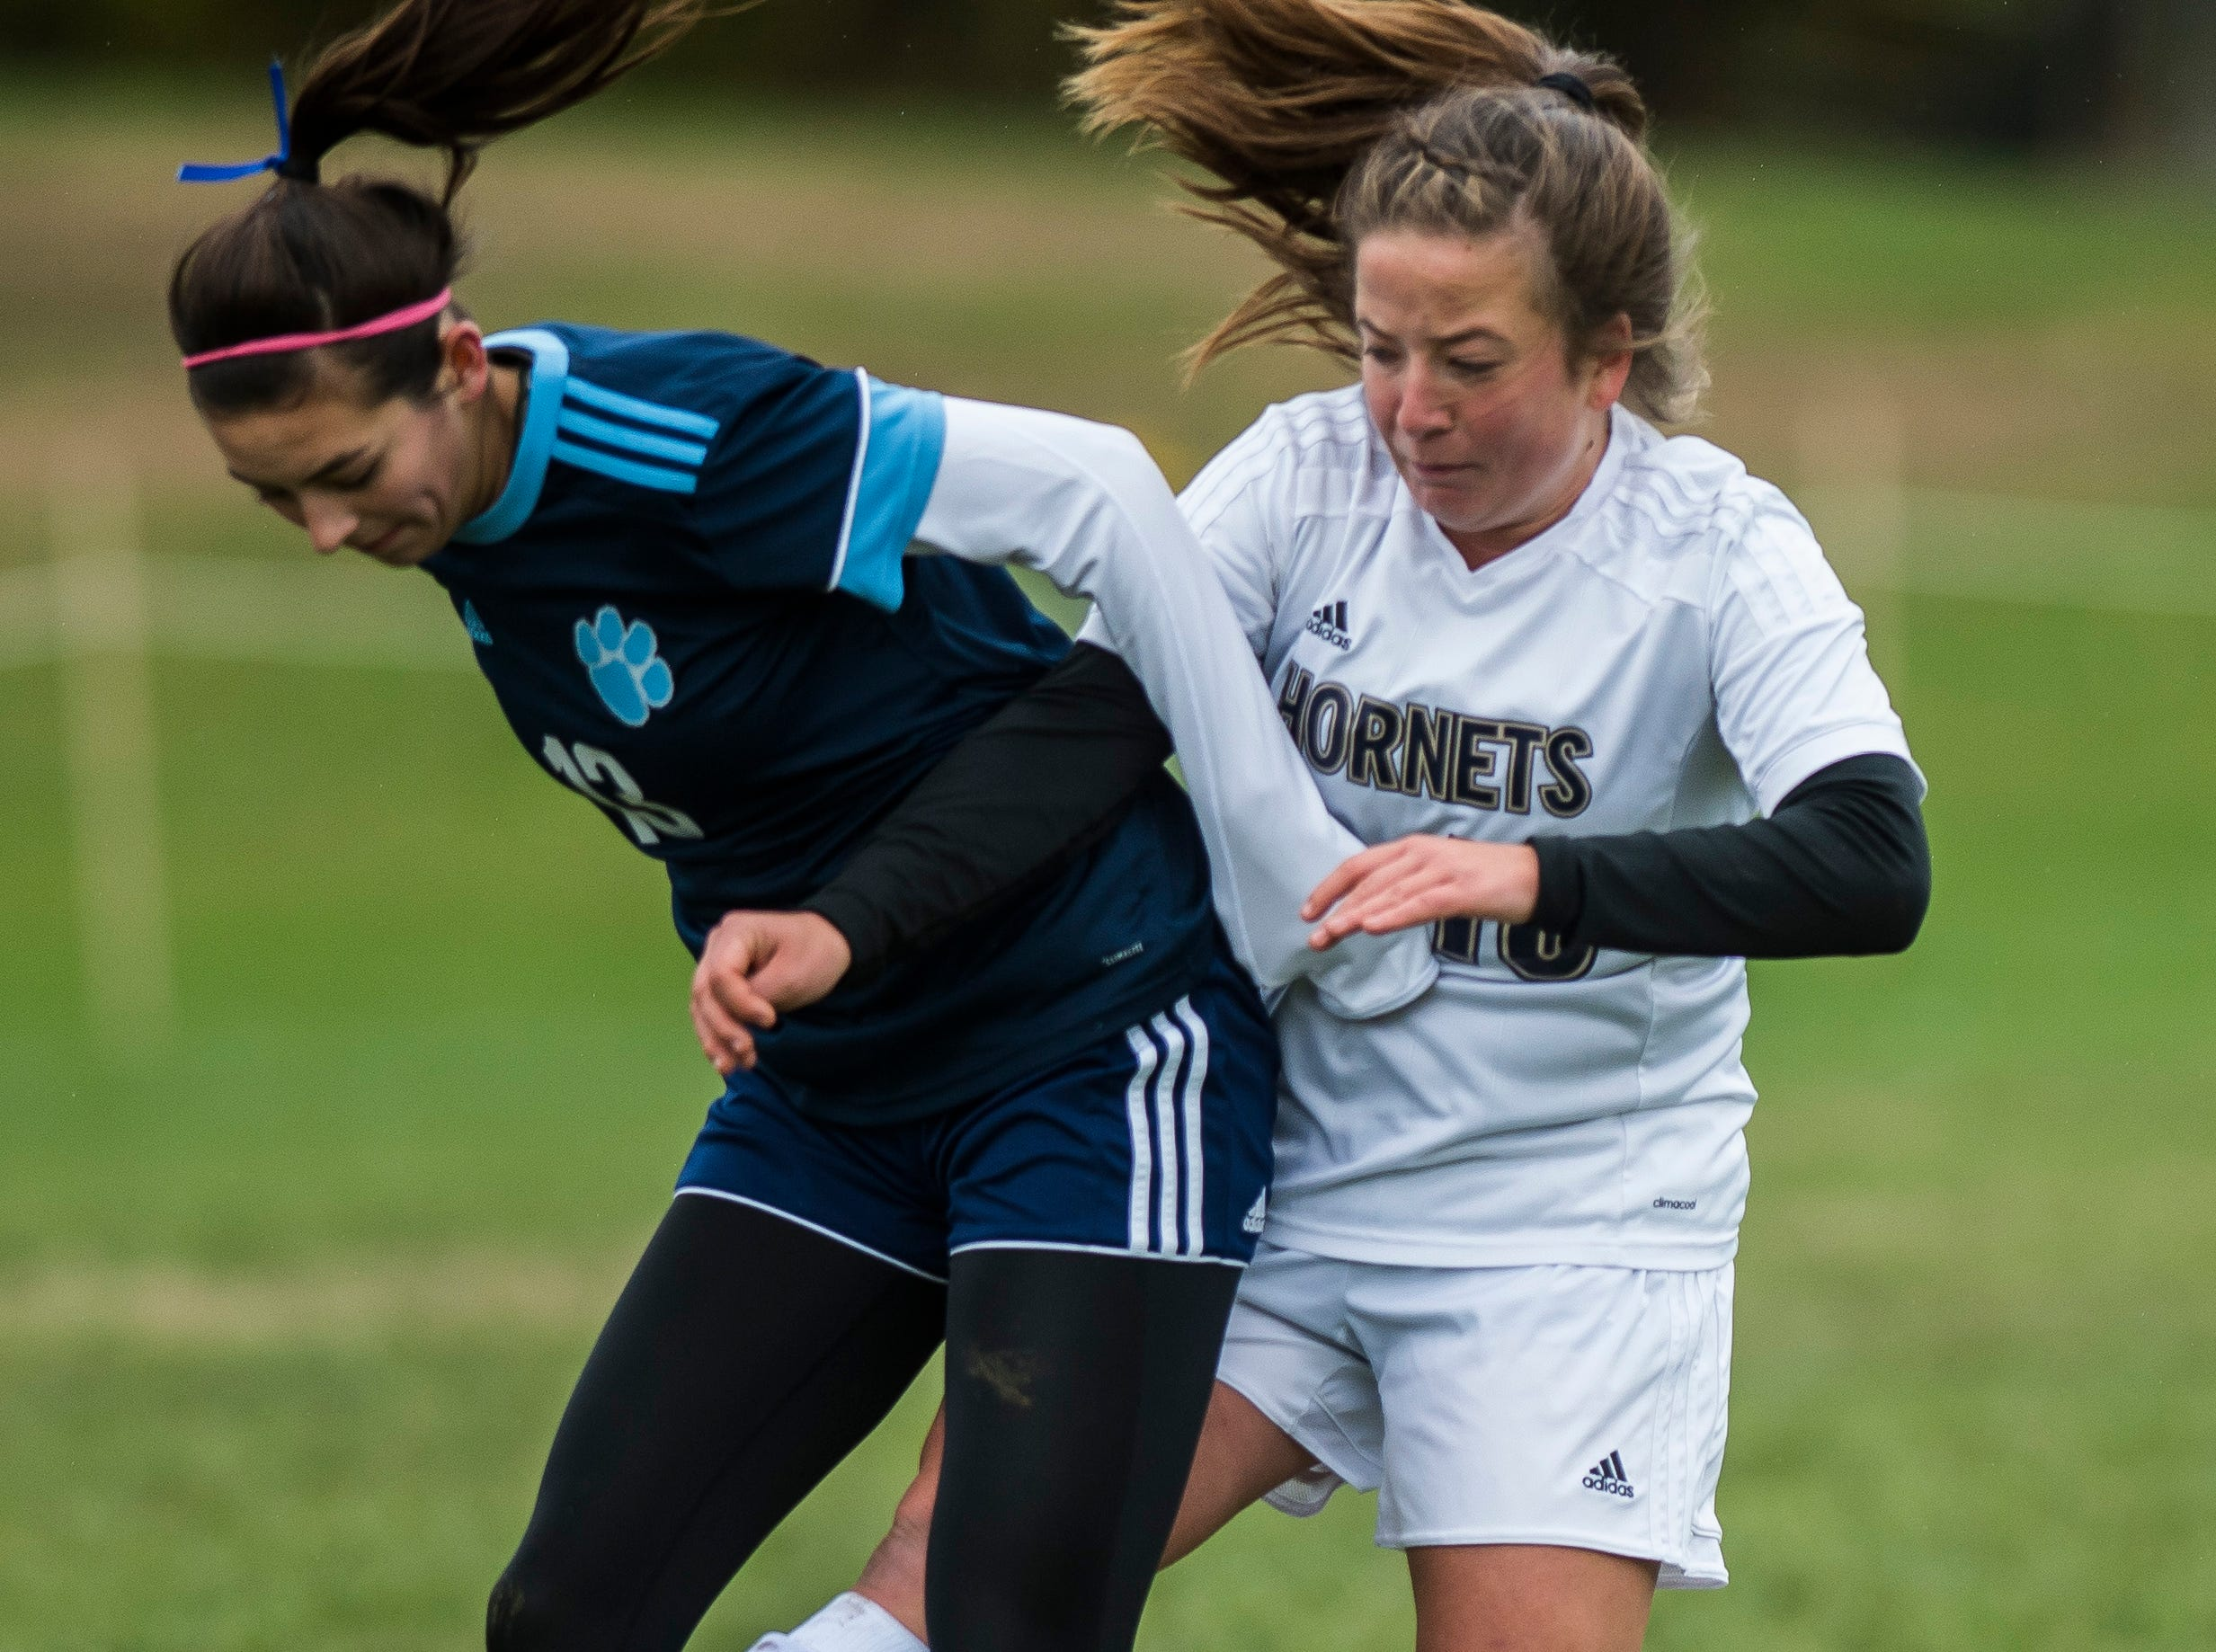 MMU #13 Macey Wissell and Essex #18 Francesca Martin fight for the ball during their quarter-final game in Jericho on Saturday, Oct. 27, 2018, that went into double overtime and shootout. Essex took the penalty kick contest to win, 4-1.